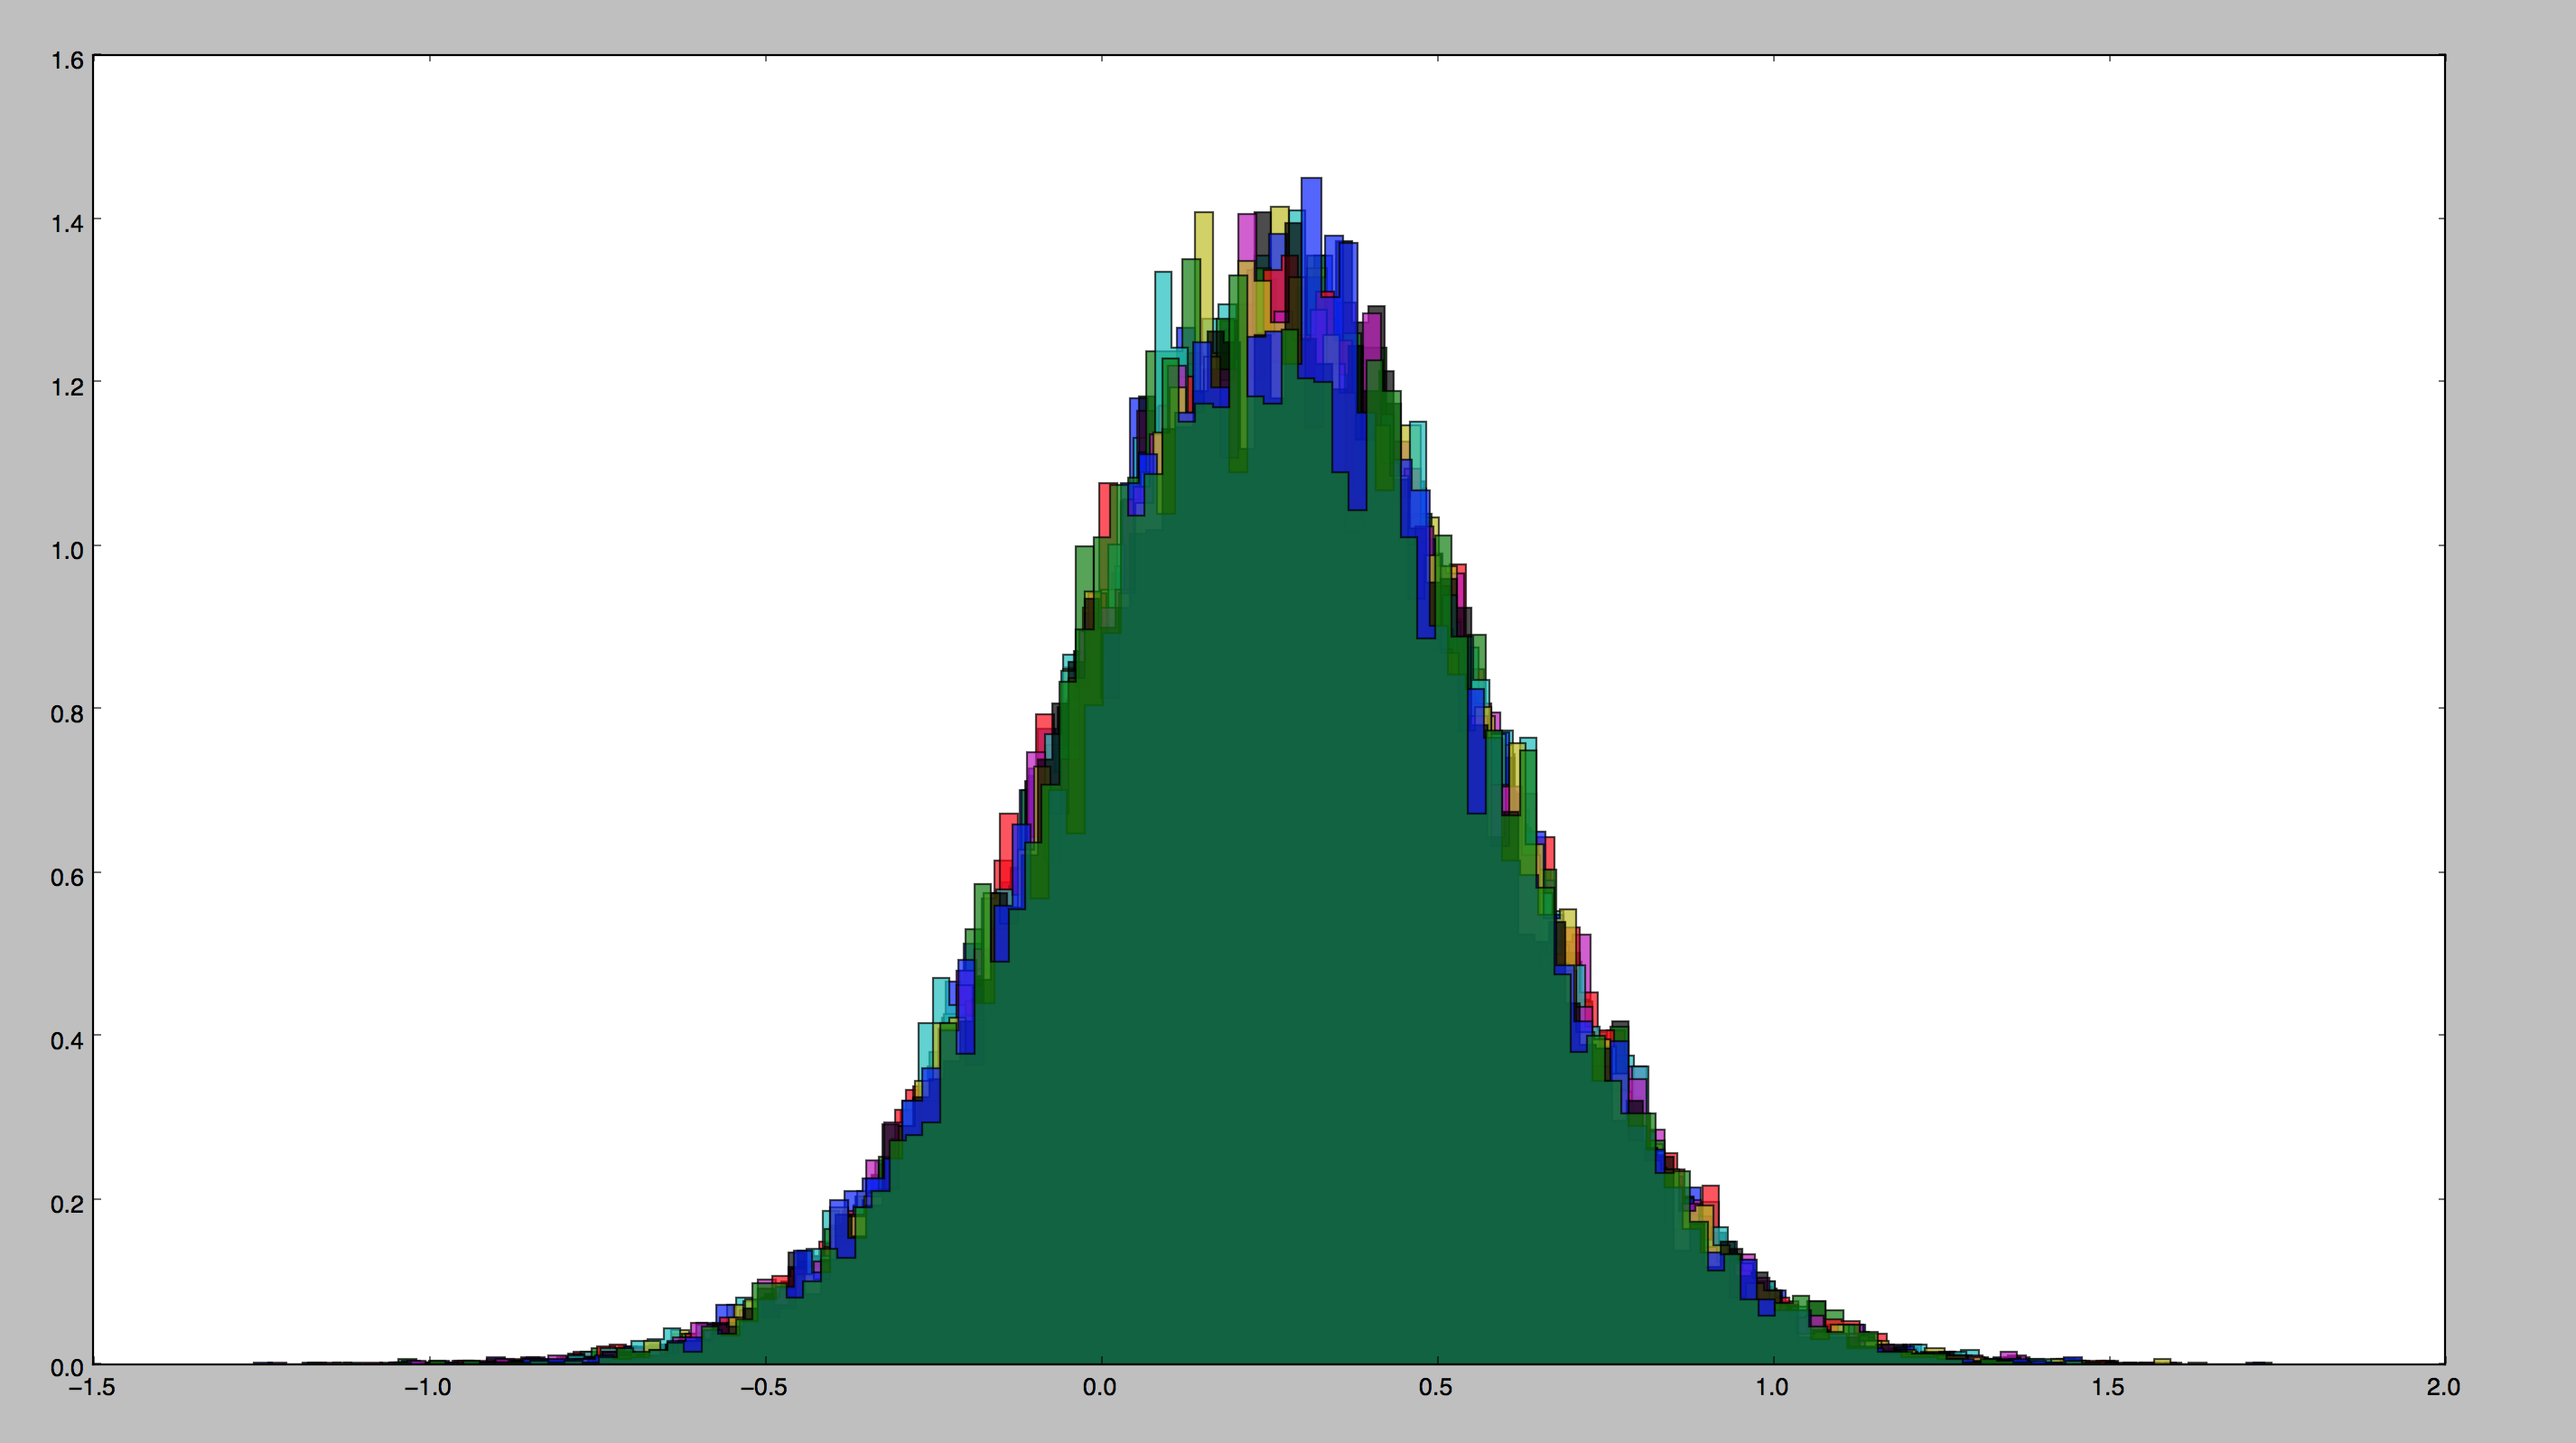 What is the point of all of these normal distributions?